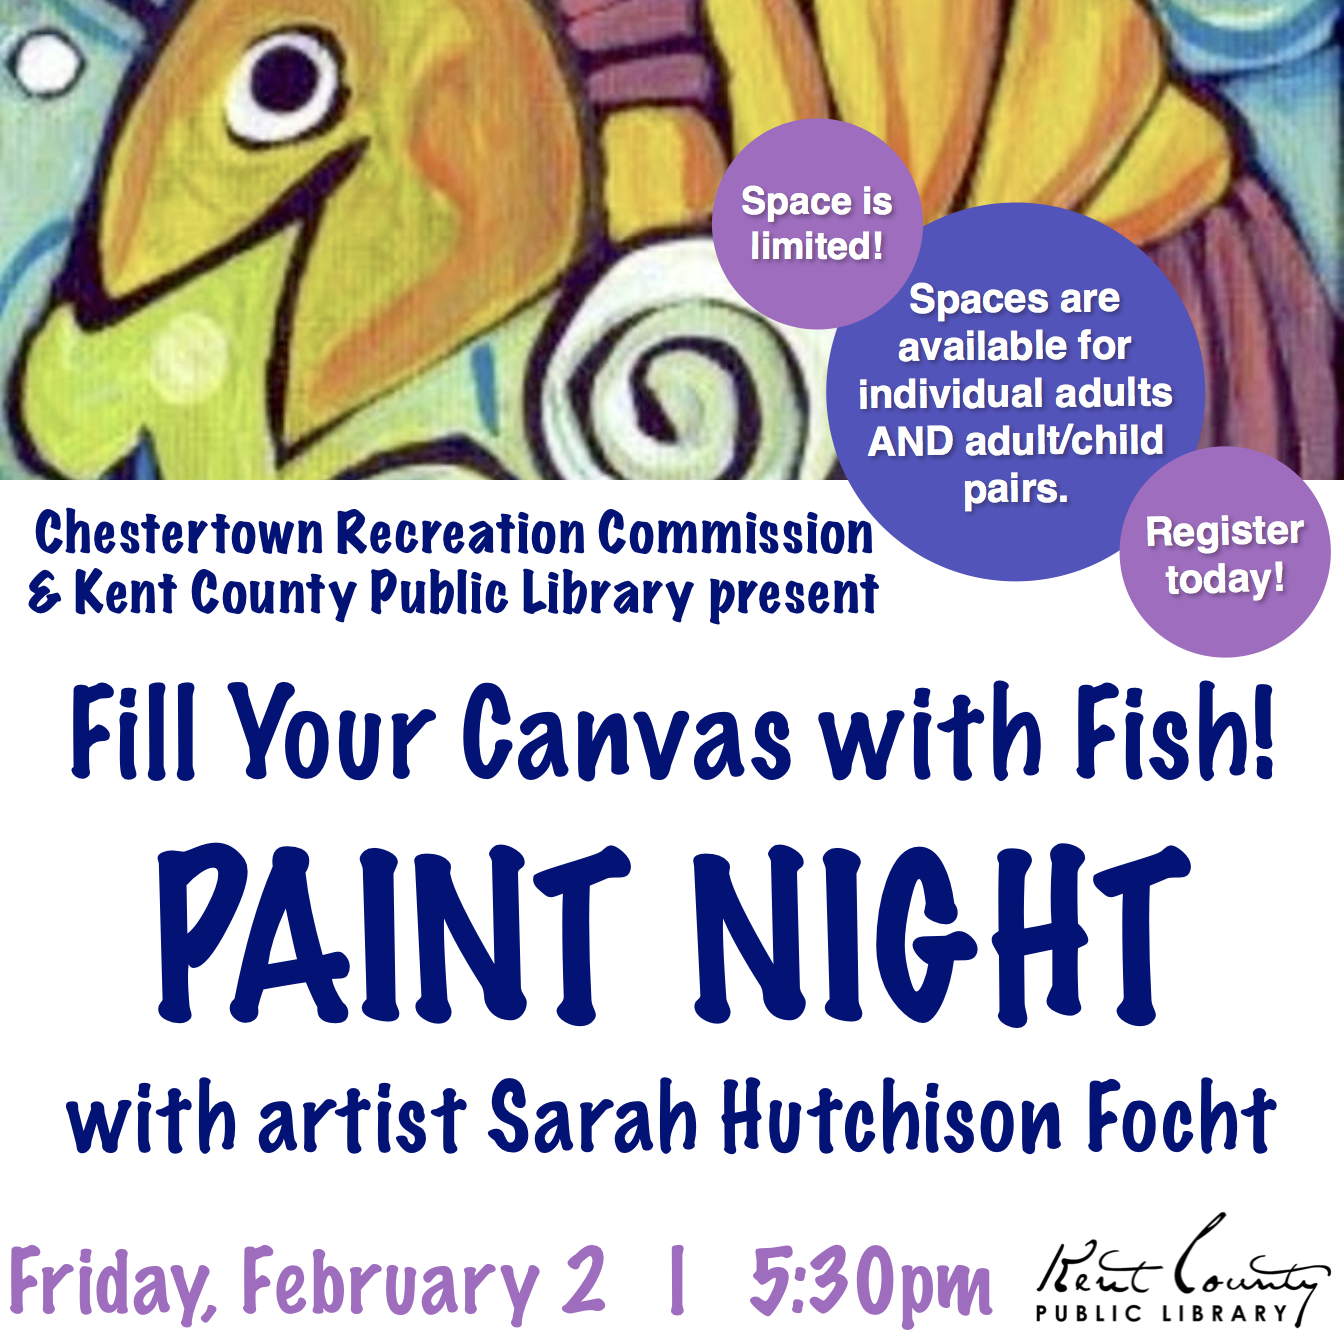 Paint Night - Fill Your Canvas with Fish!